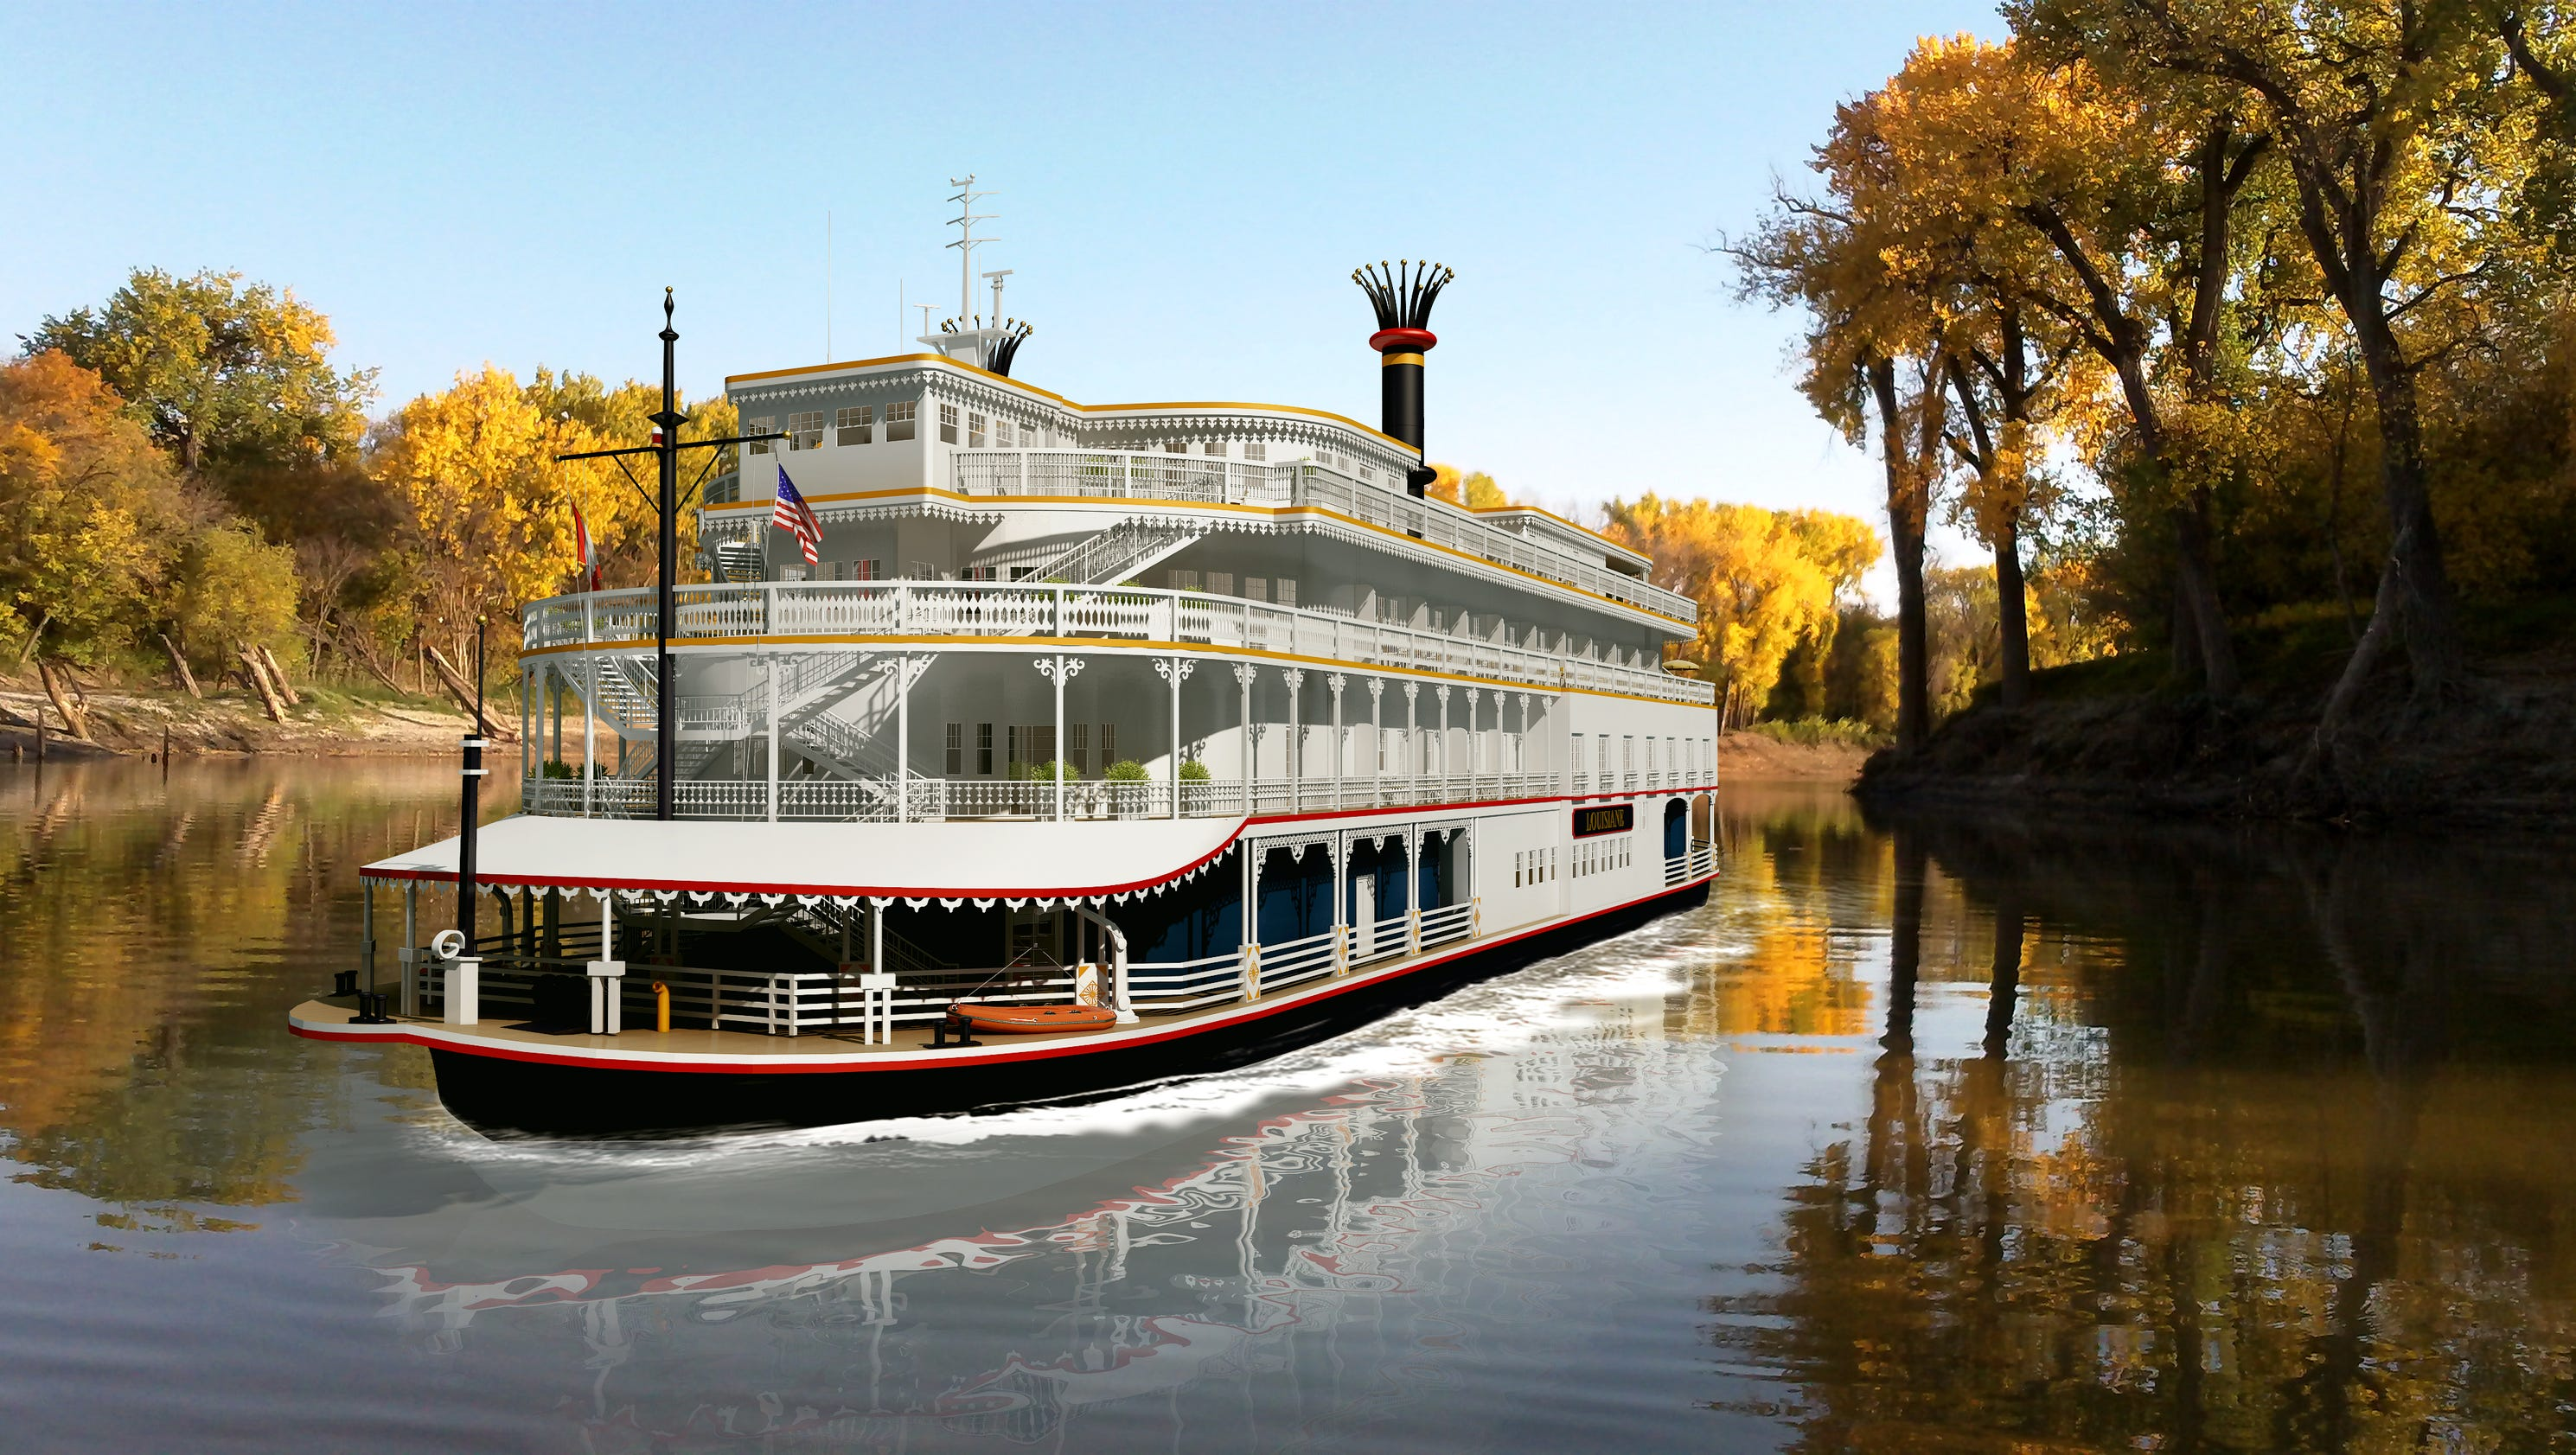 Boutique Holiday River Cruise To Stop In Shreveport